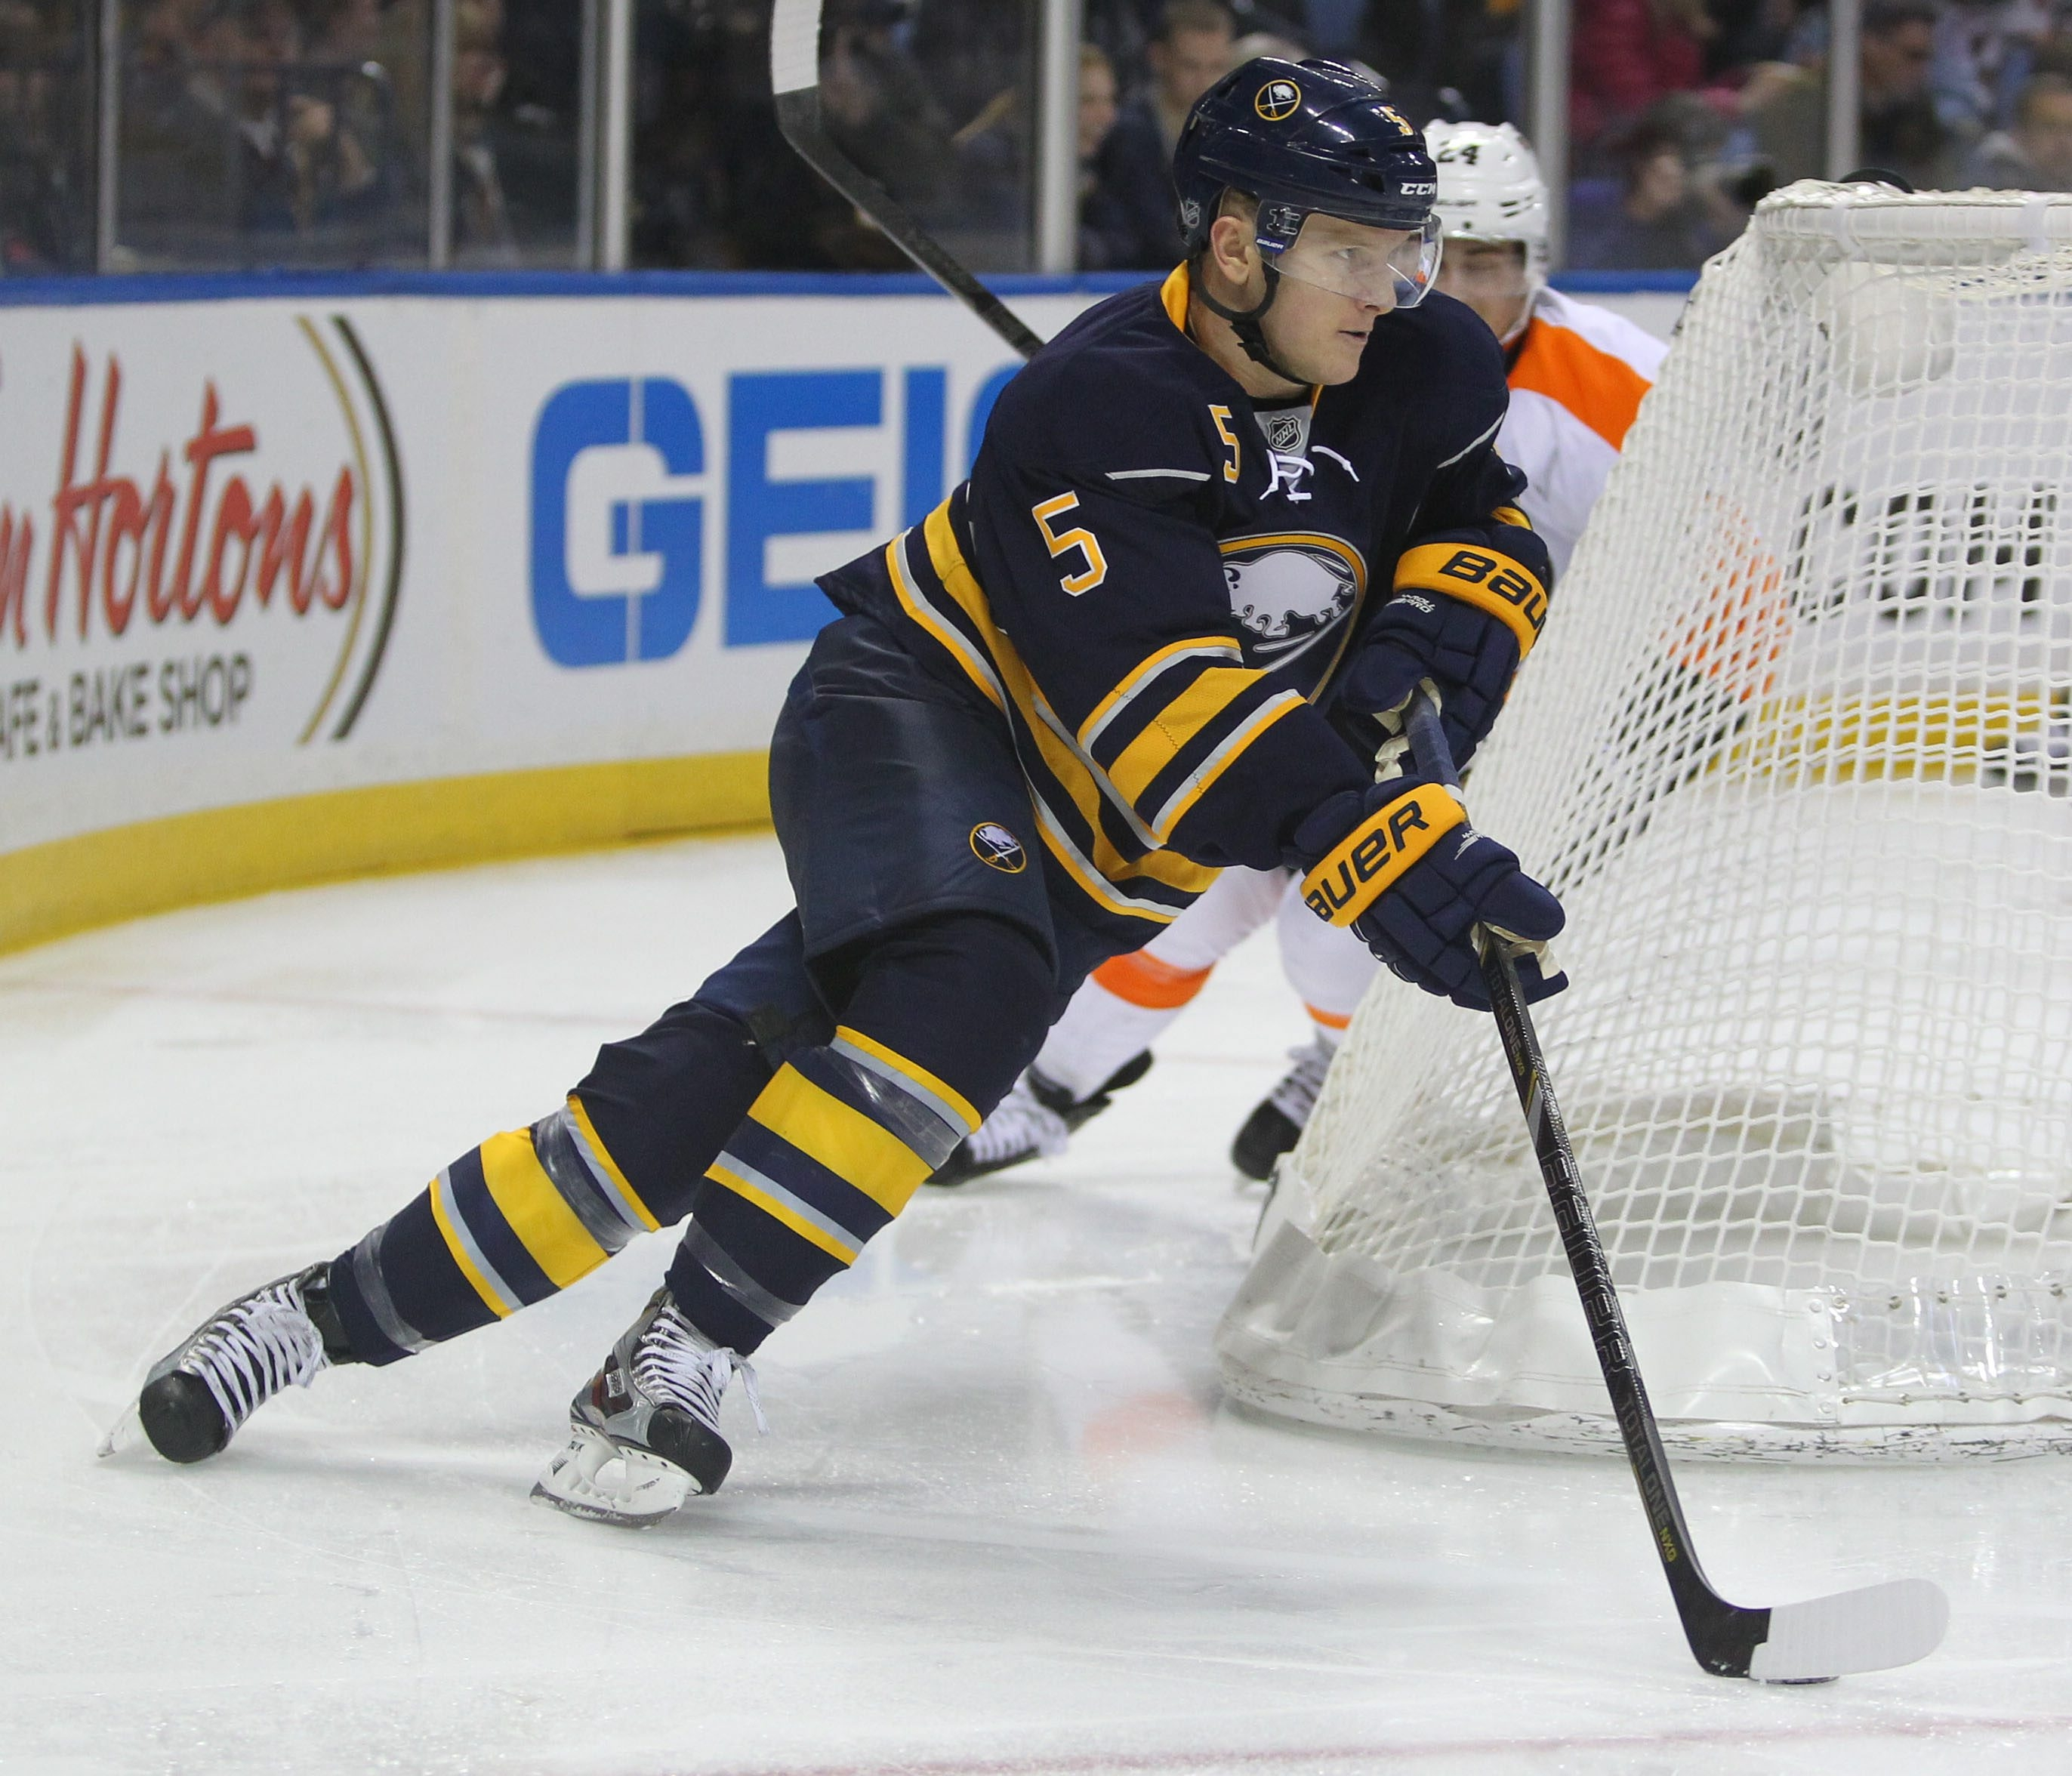 Ex-UMass Lowell defenseman Chad Ruhwedel skated 13 minutes and fired four shots during the Sabres' 1-0 triumph over Philadelphia.